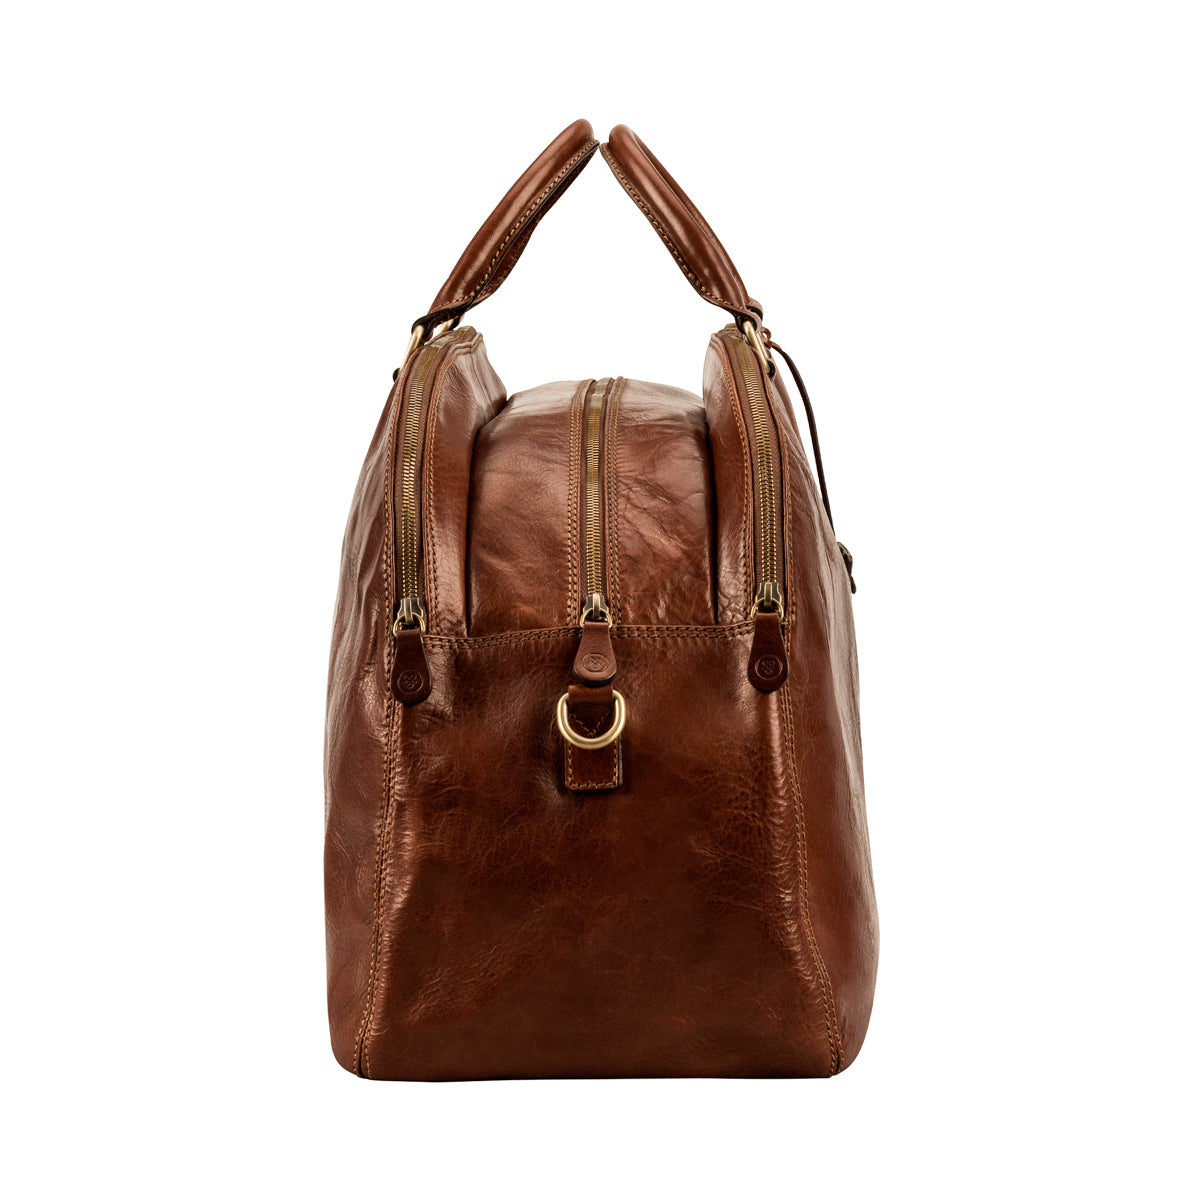 Image 3 of the 'Liliana' Chestnut Veg-Tanned Leather Holdall